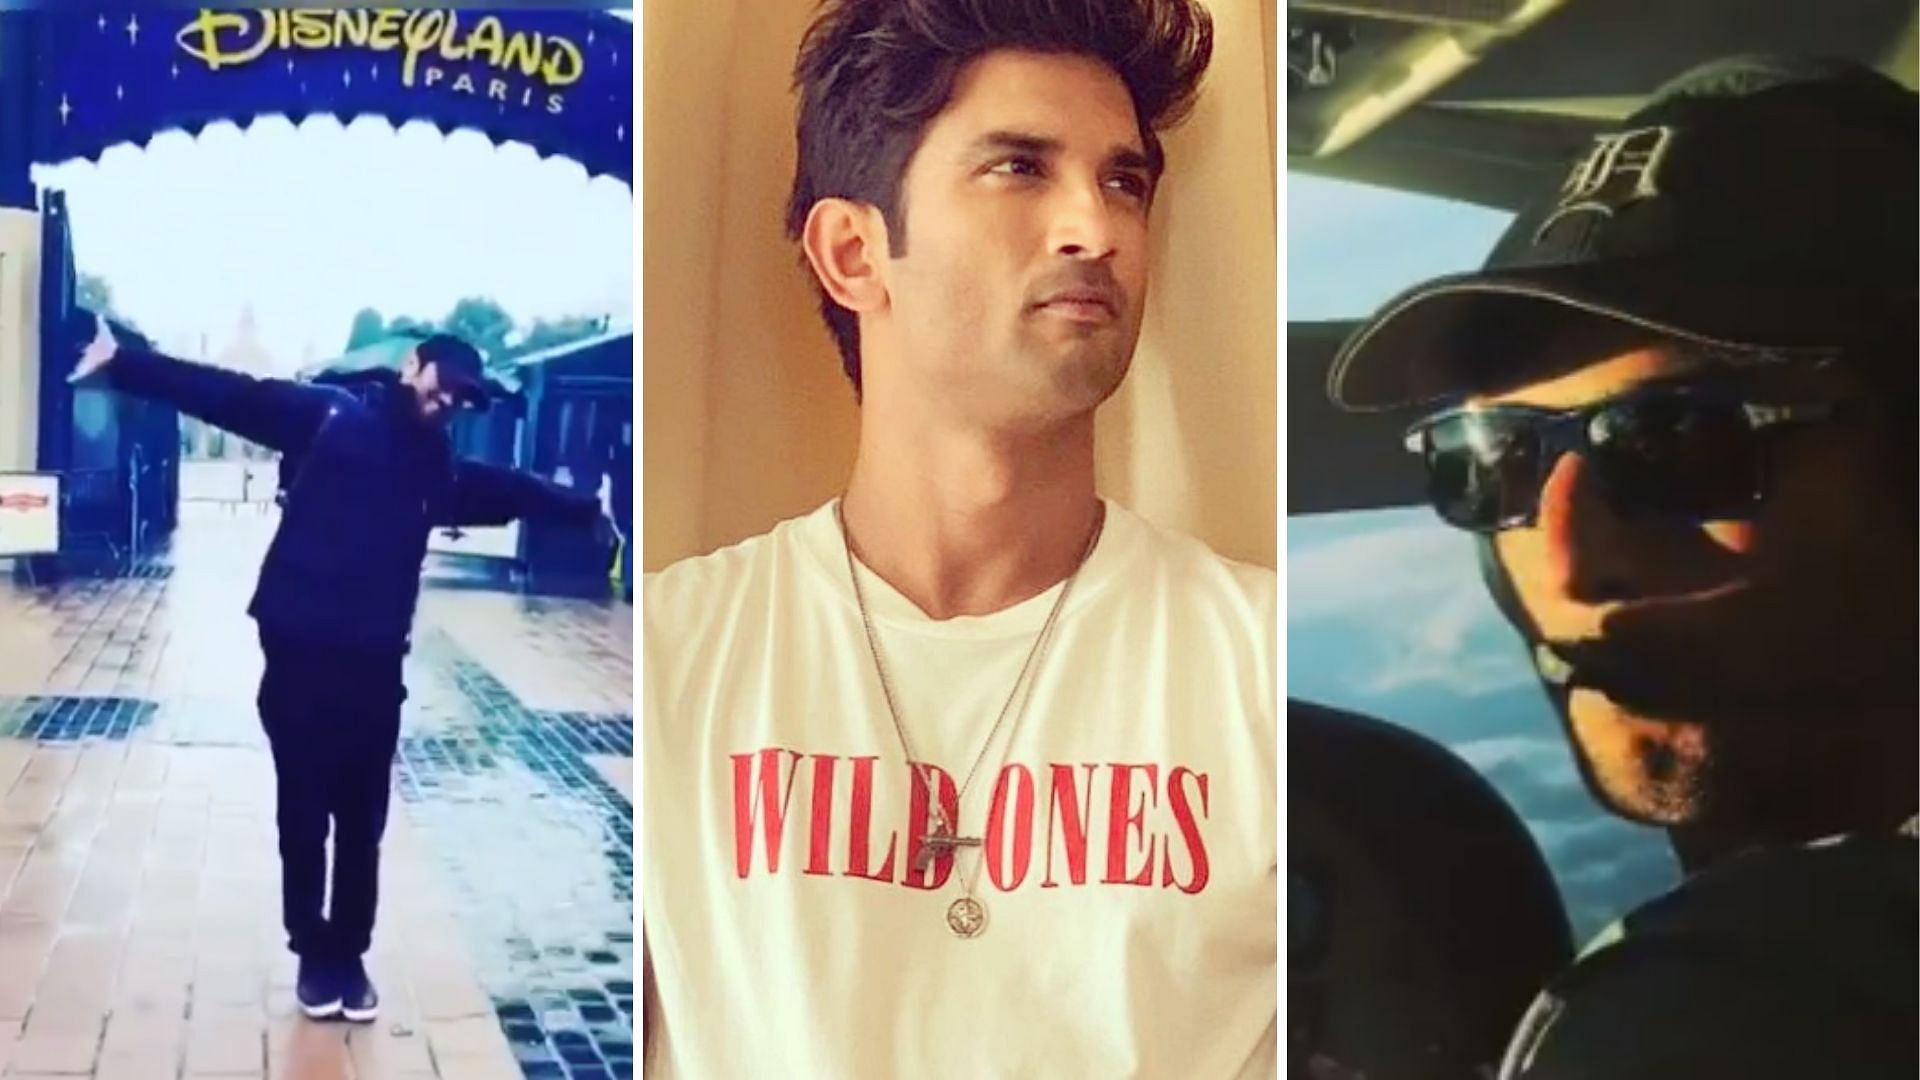 Disneyland to Flying a Plane, a Look at Sushant's Big Bucket List